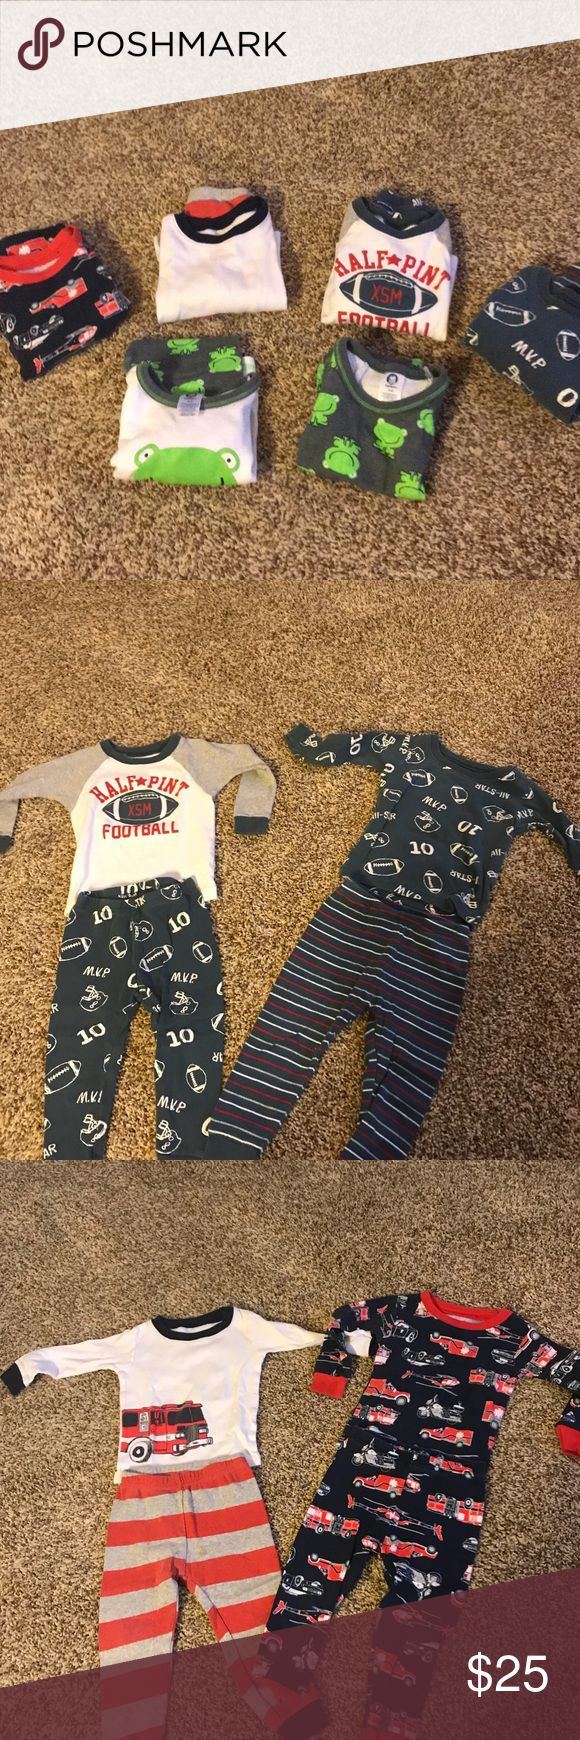 Lot of 6 18 mo boy Jammie's Used, but in good condition (spot shown) jammies. I use only natural/organic laundry detergent. Smoke and pet free home! Purchased at Carters and Target (frog jammies are Target, rest is carters) let me know if you have any questions! Carter's Pajamas Pajama Sets